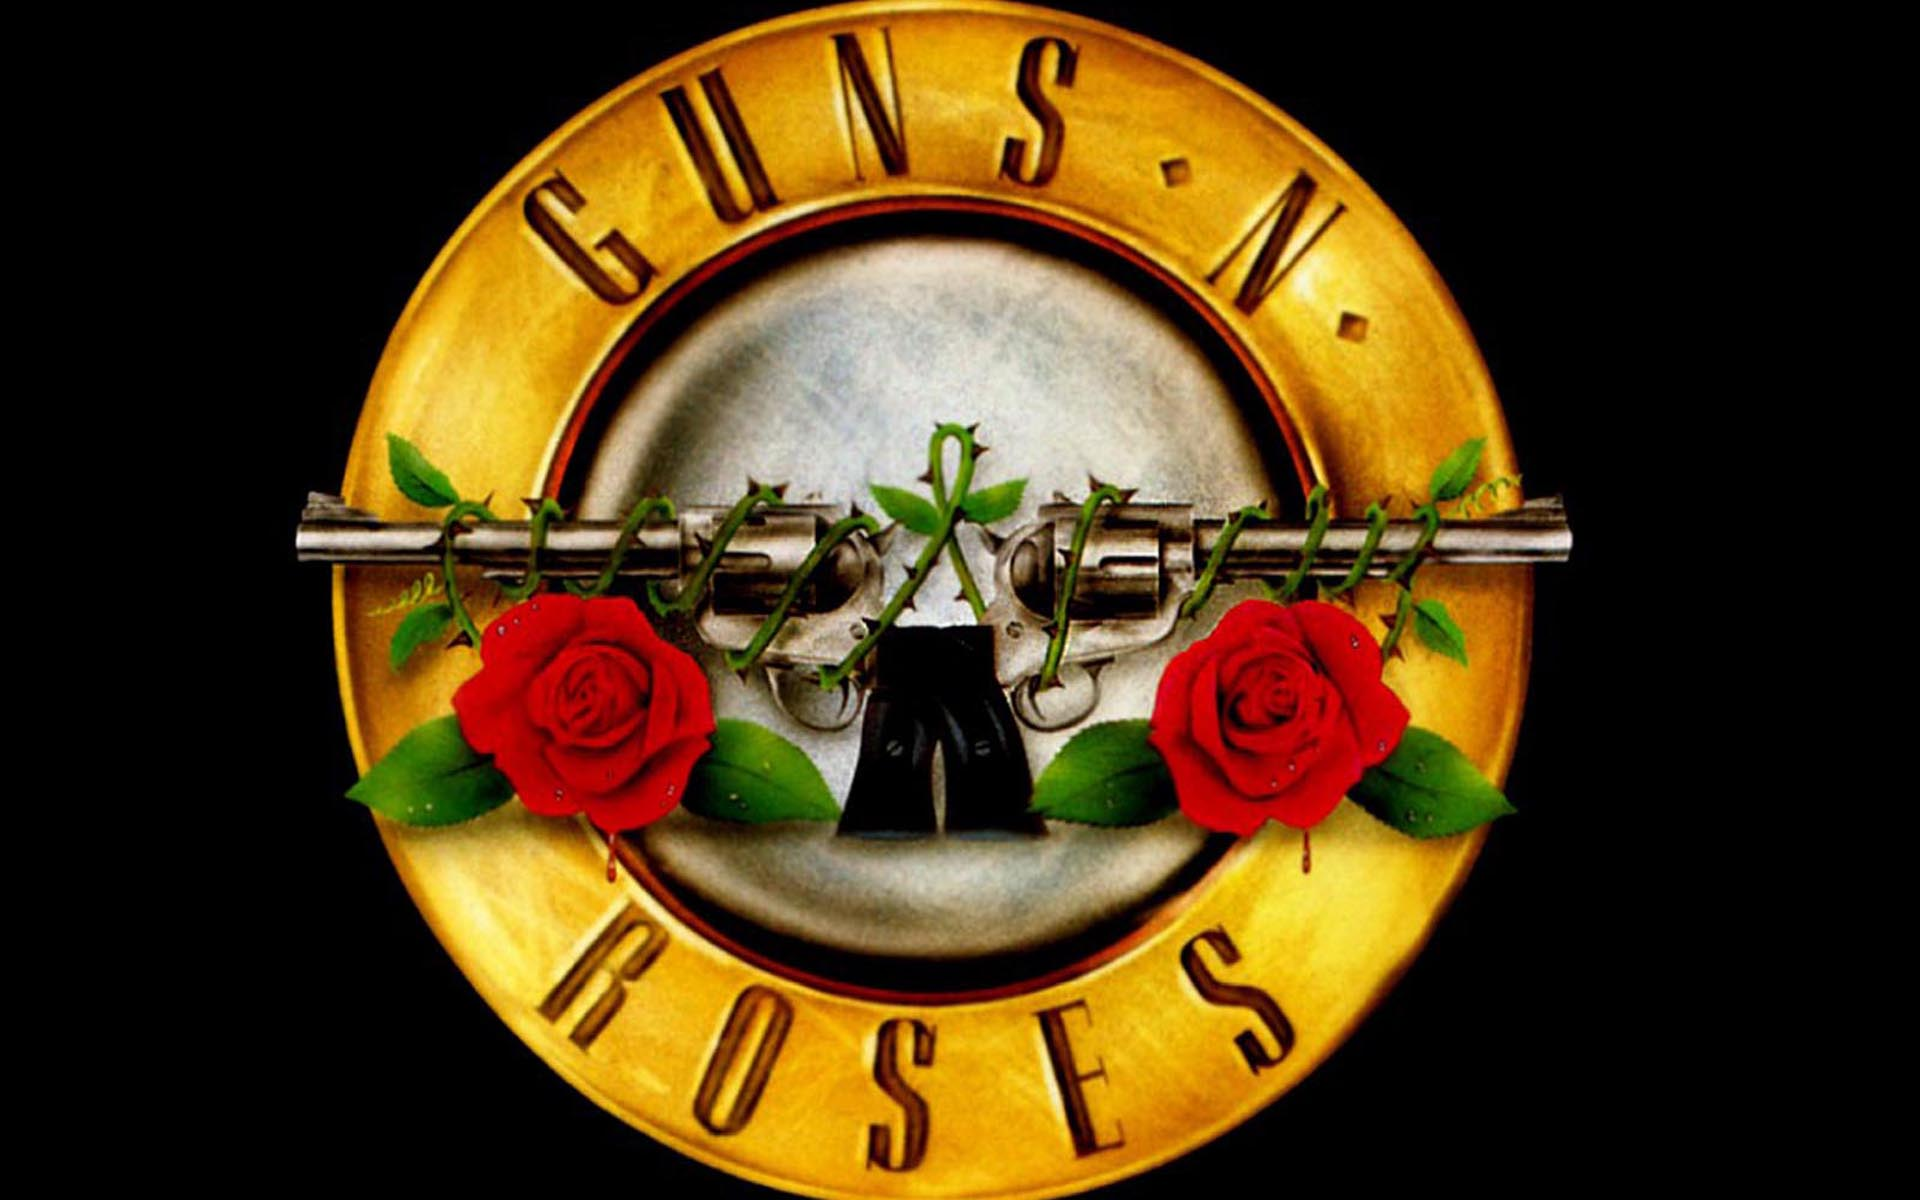 Image result for Guns and roses logo